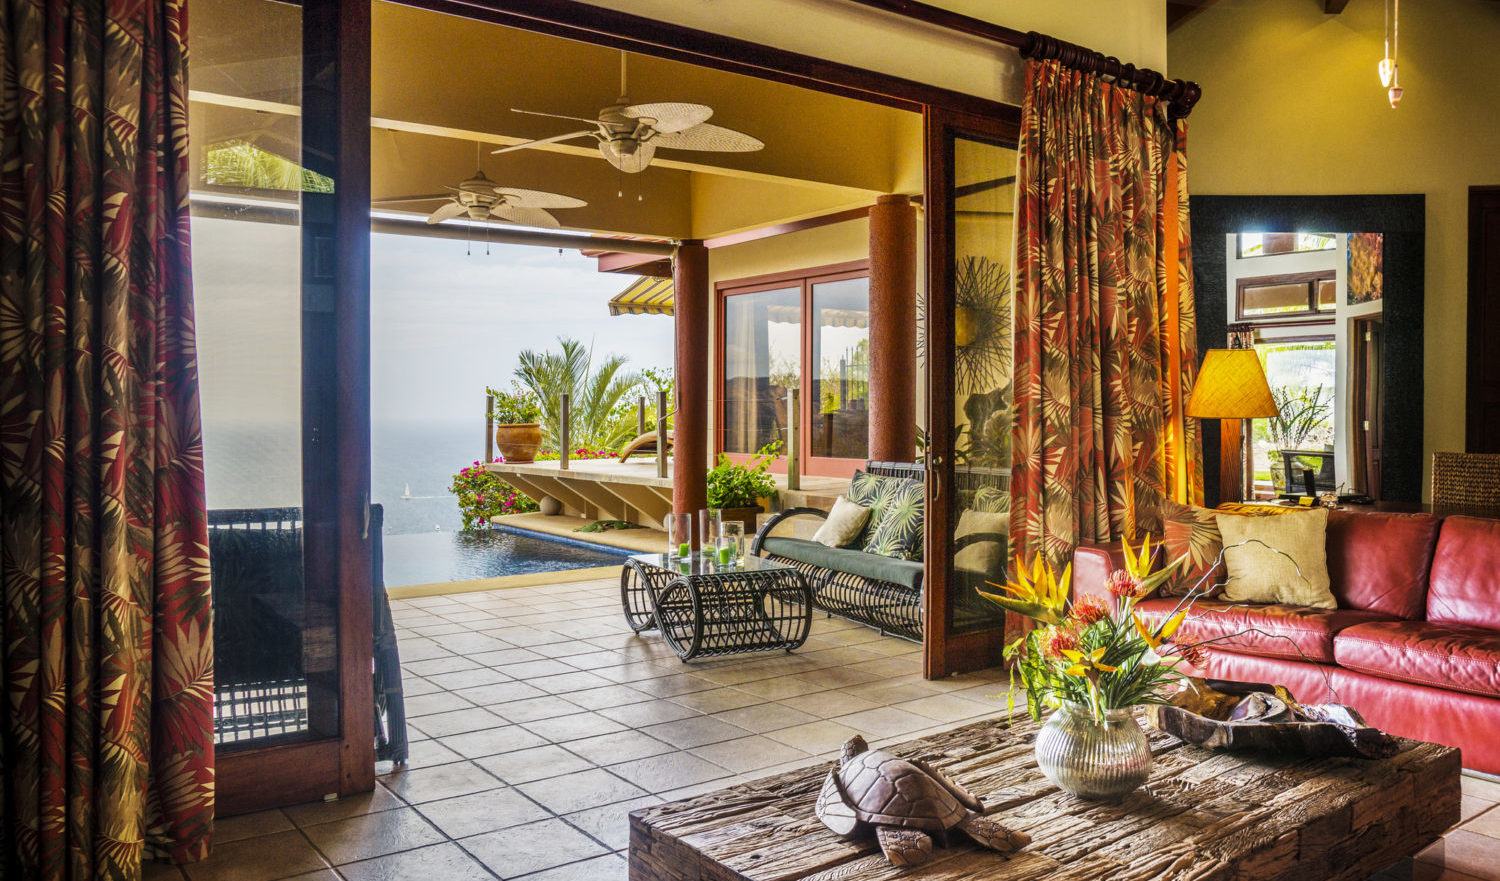 An interior view looking outwards to the ocean in a luxury villa in the tropics.  Located in Guanacaste, Costa Rica.